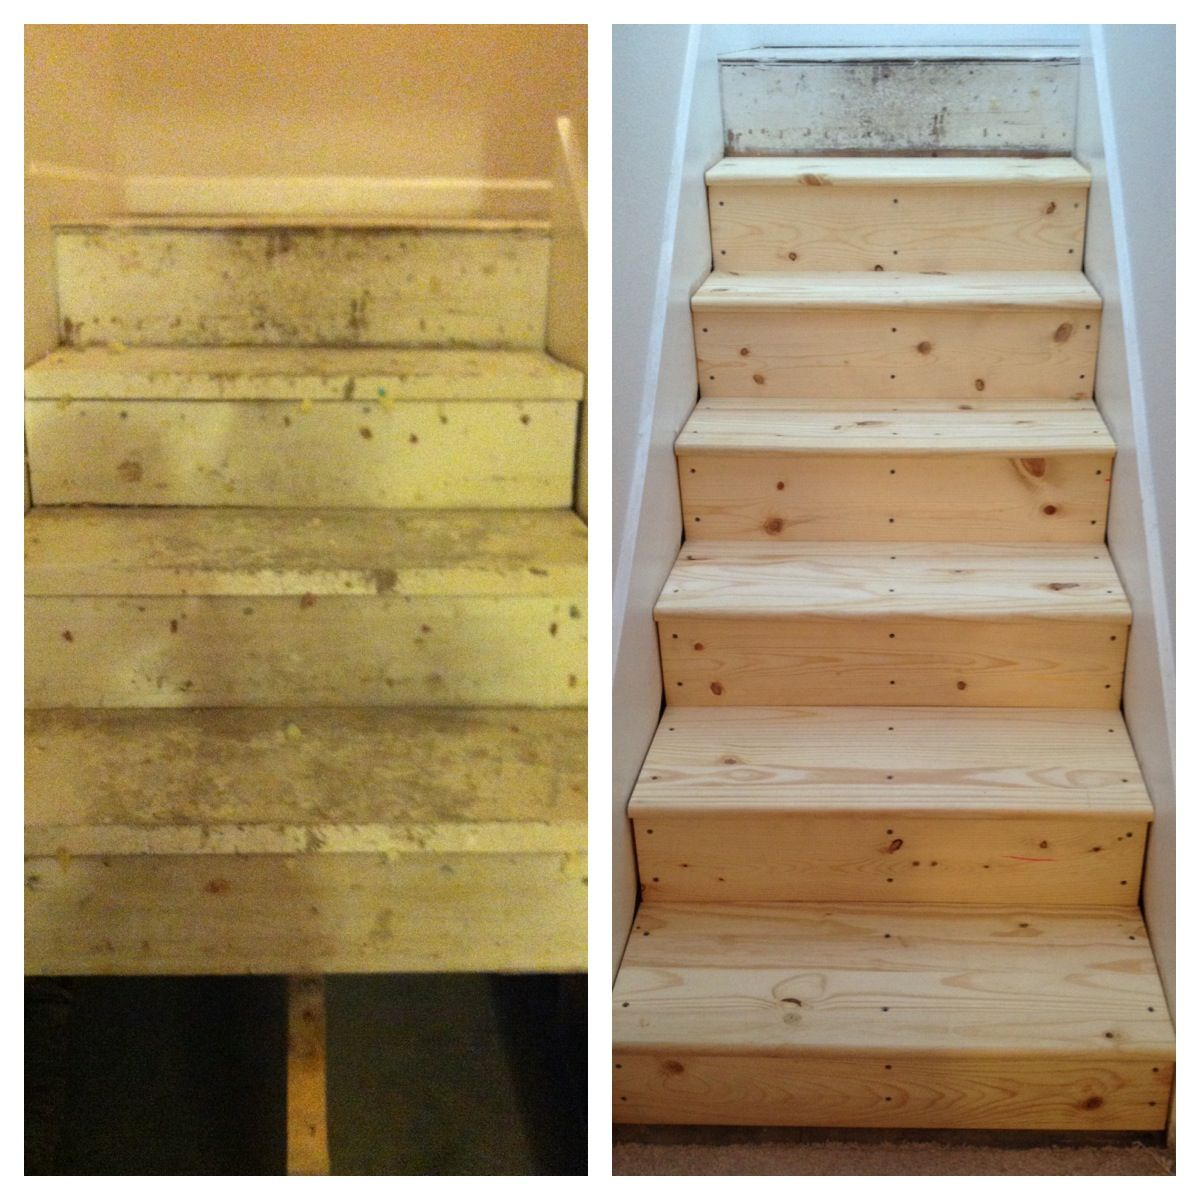 DIY carpeted stairs replaced with pine treads and risers